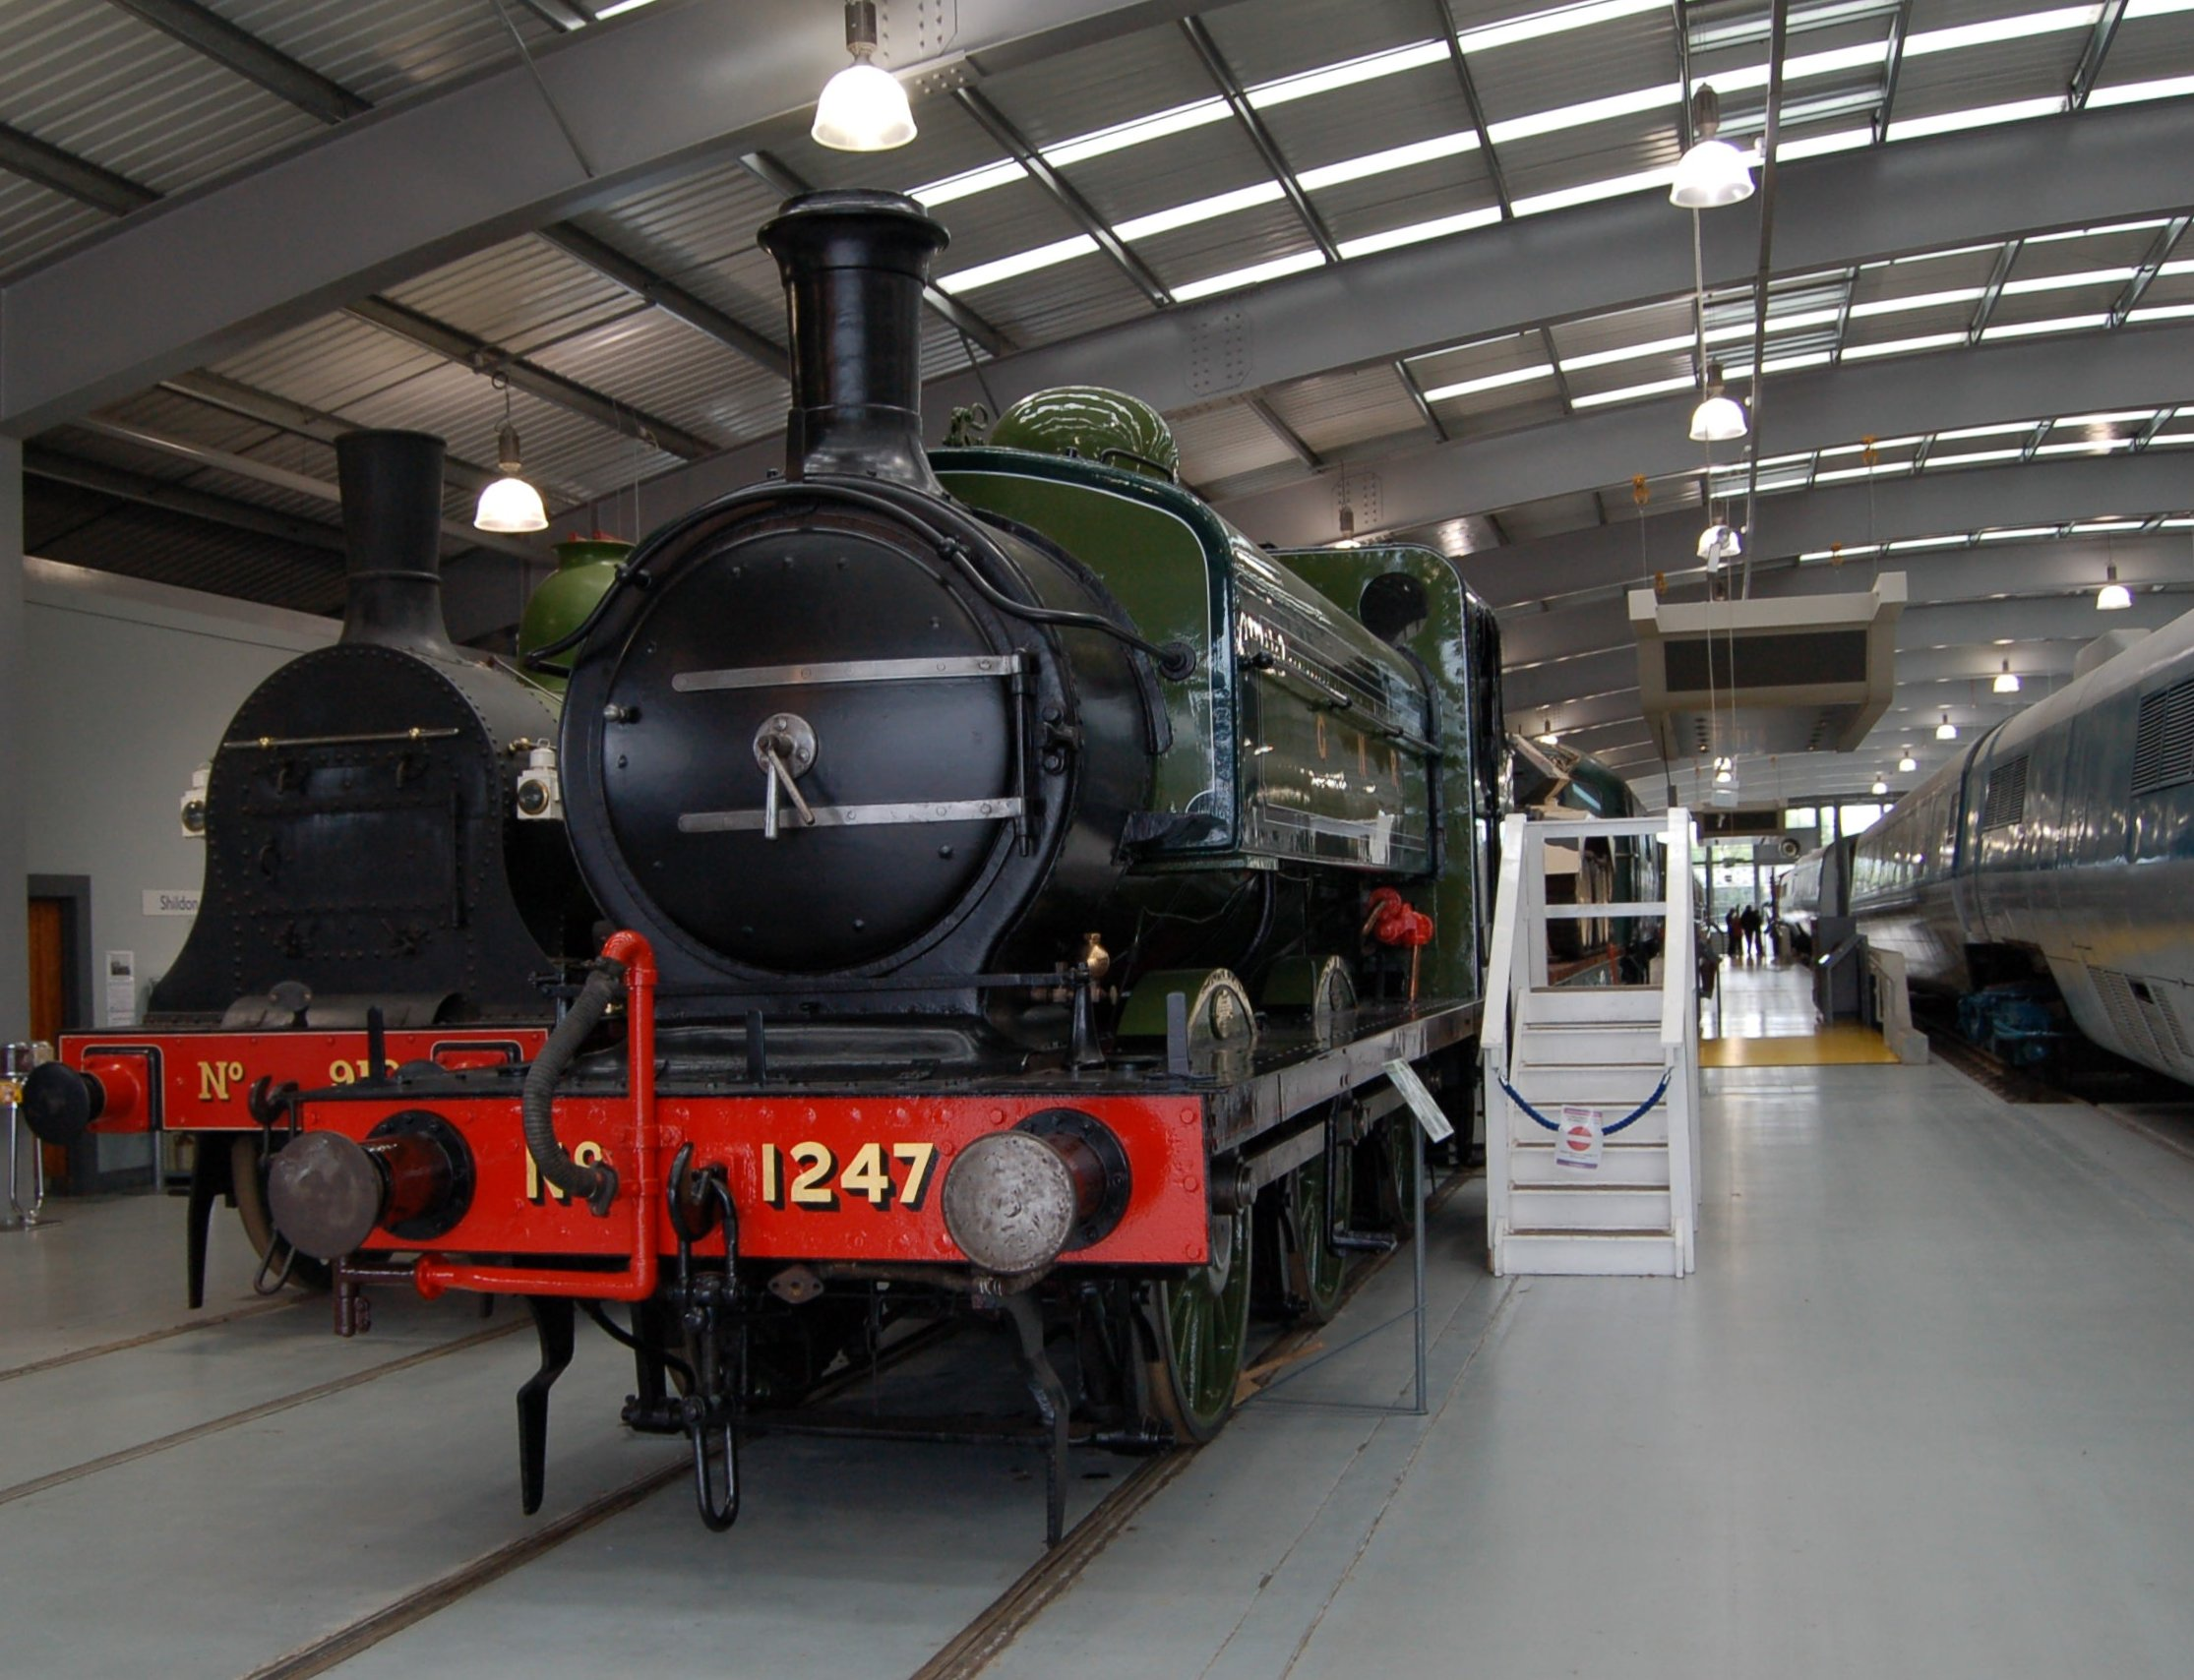 File:GNR 1247 at Locomotion Shildon.jpg